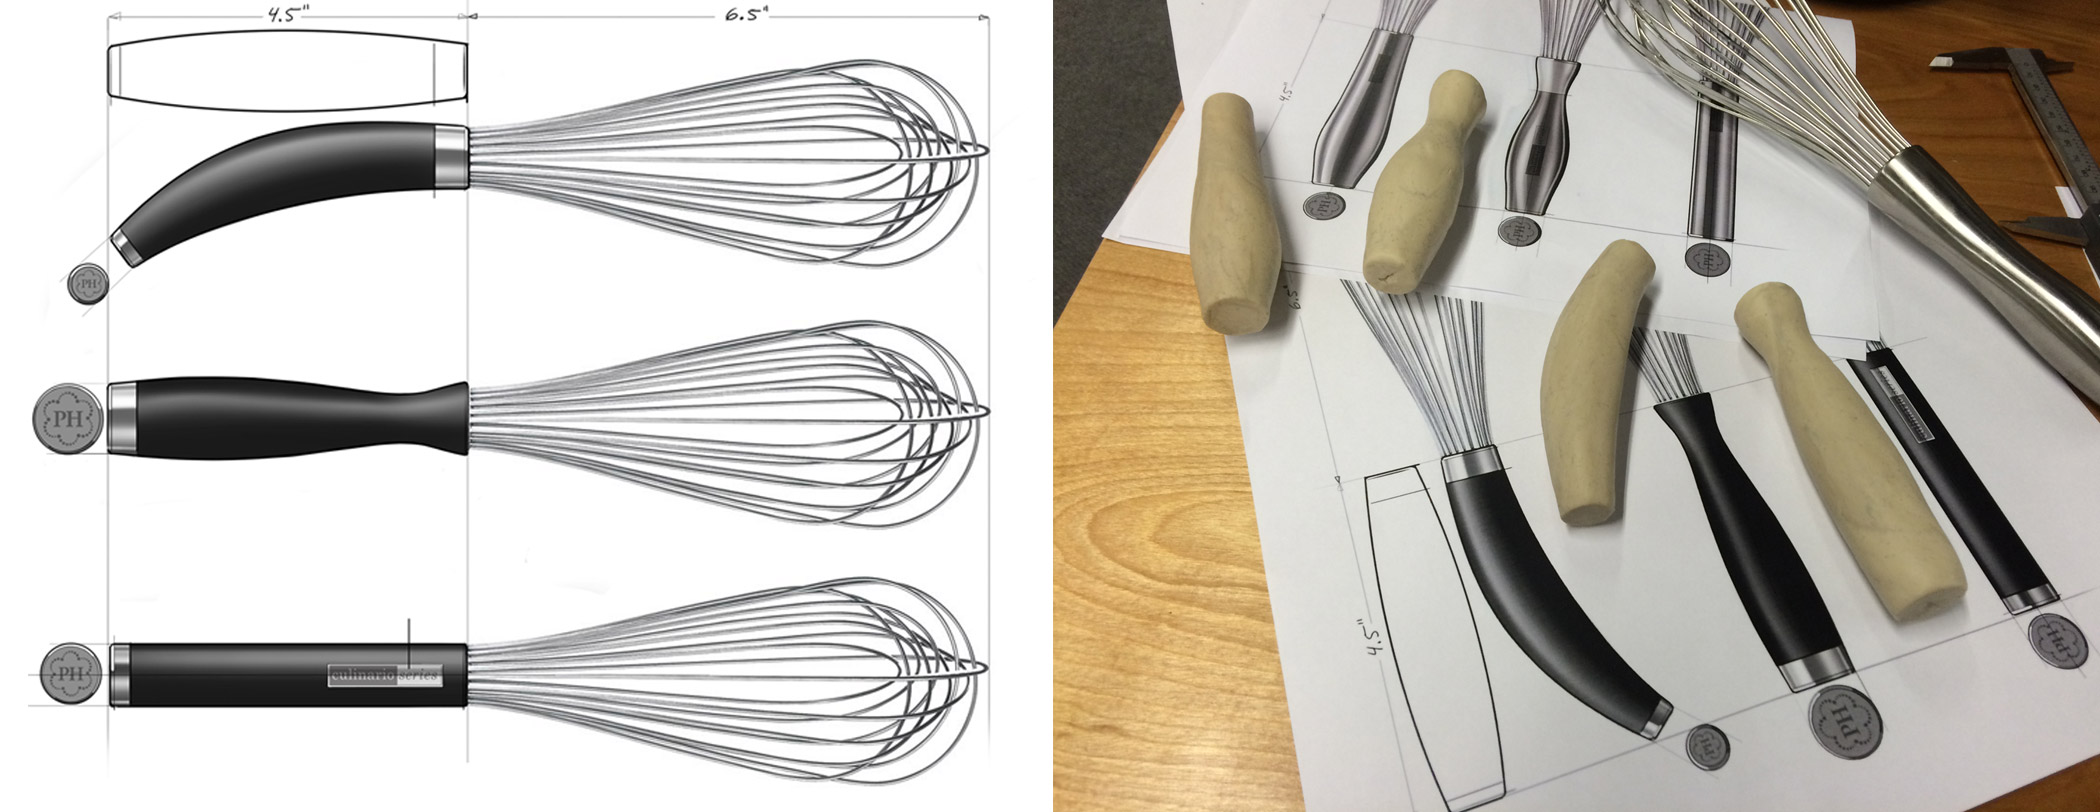 Rough Sketches of Product Concept